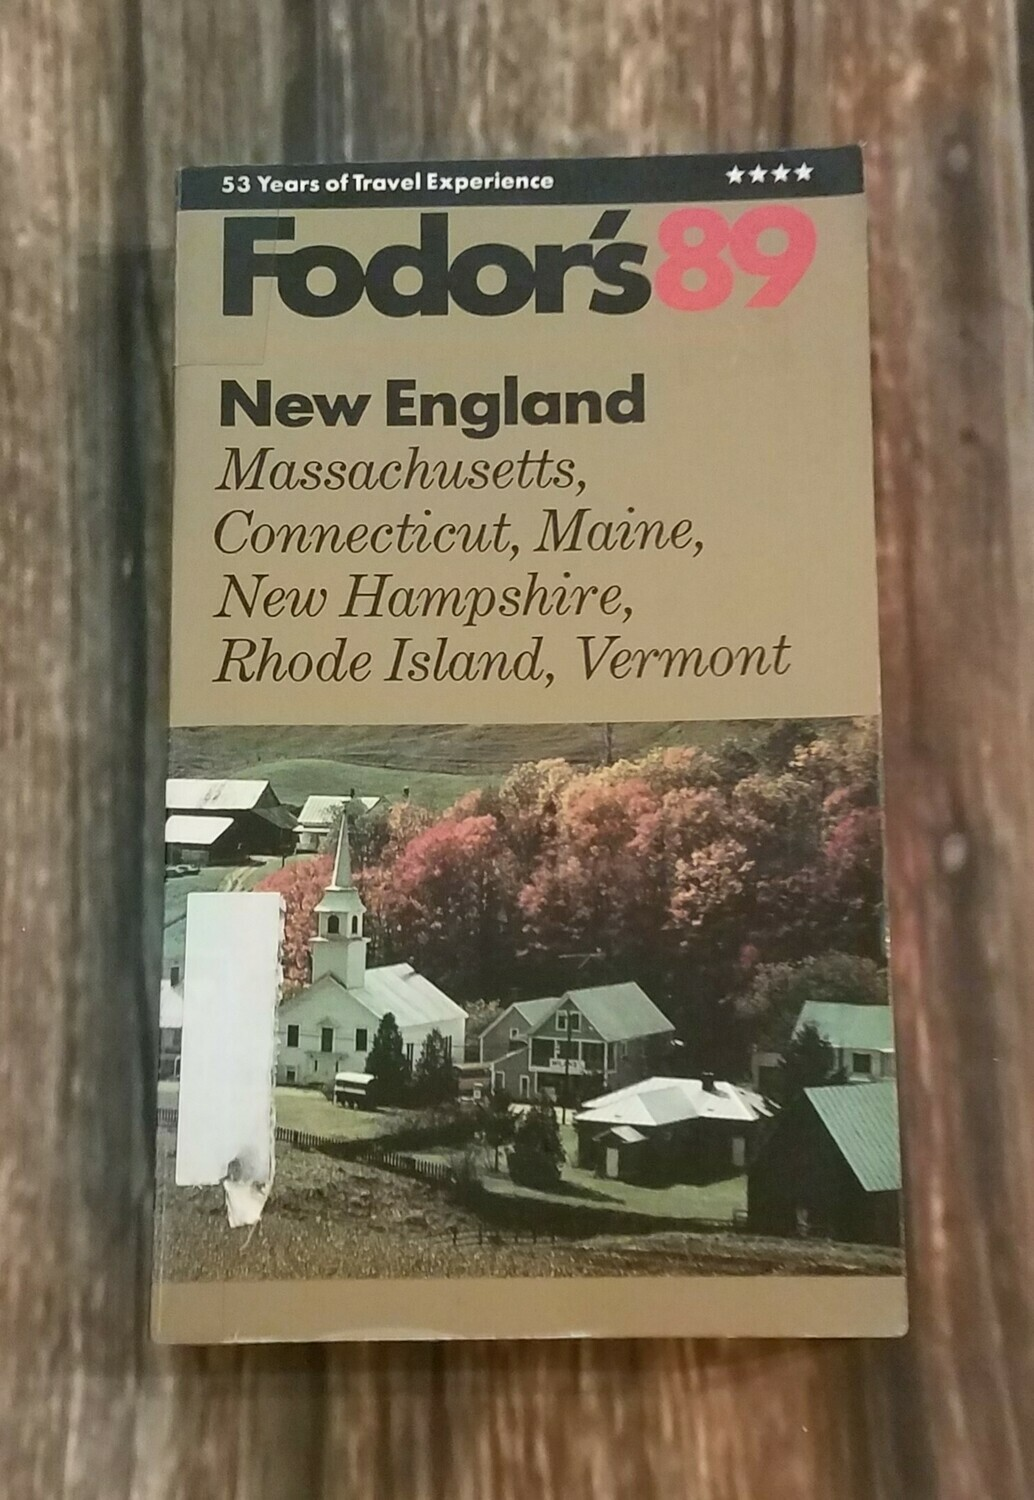 Fodor's 89 New England by Fodor's Travel Production